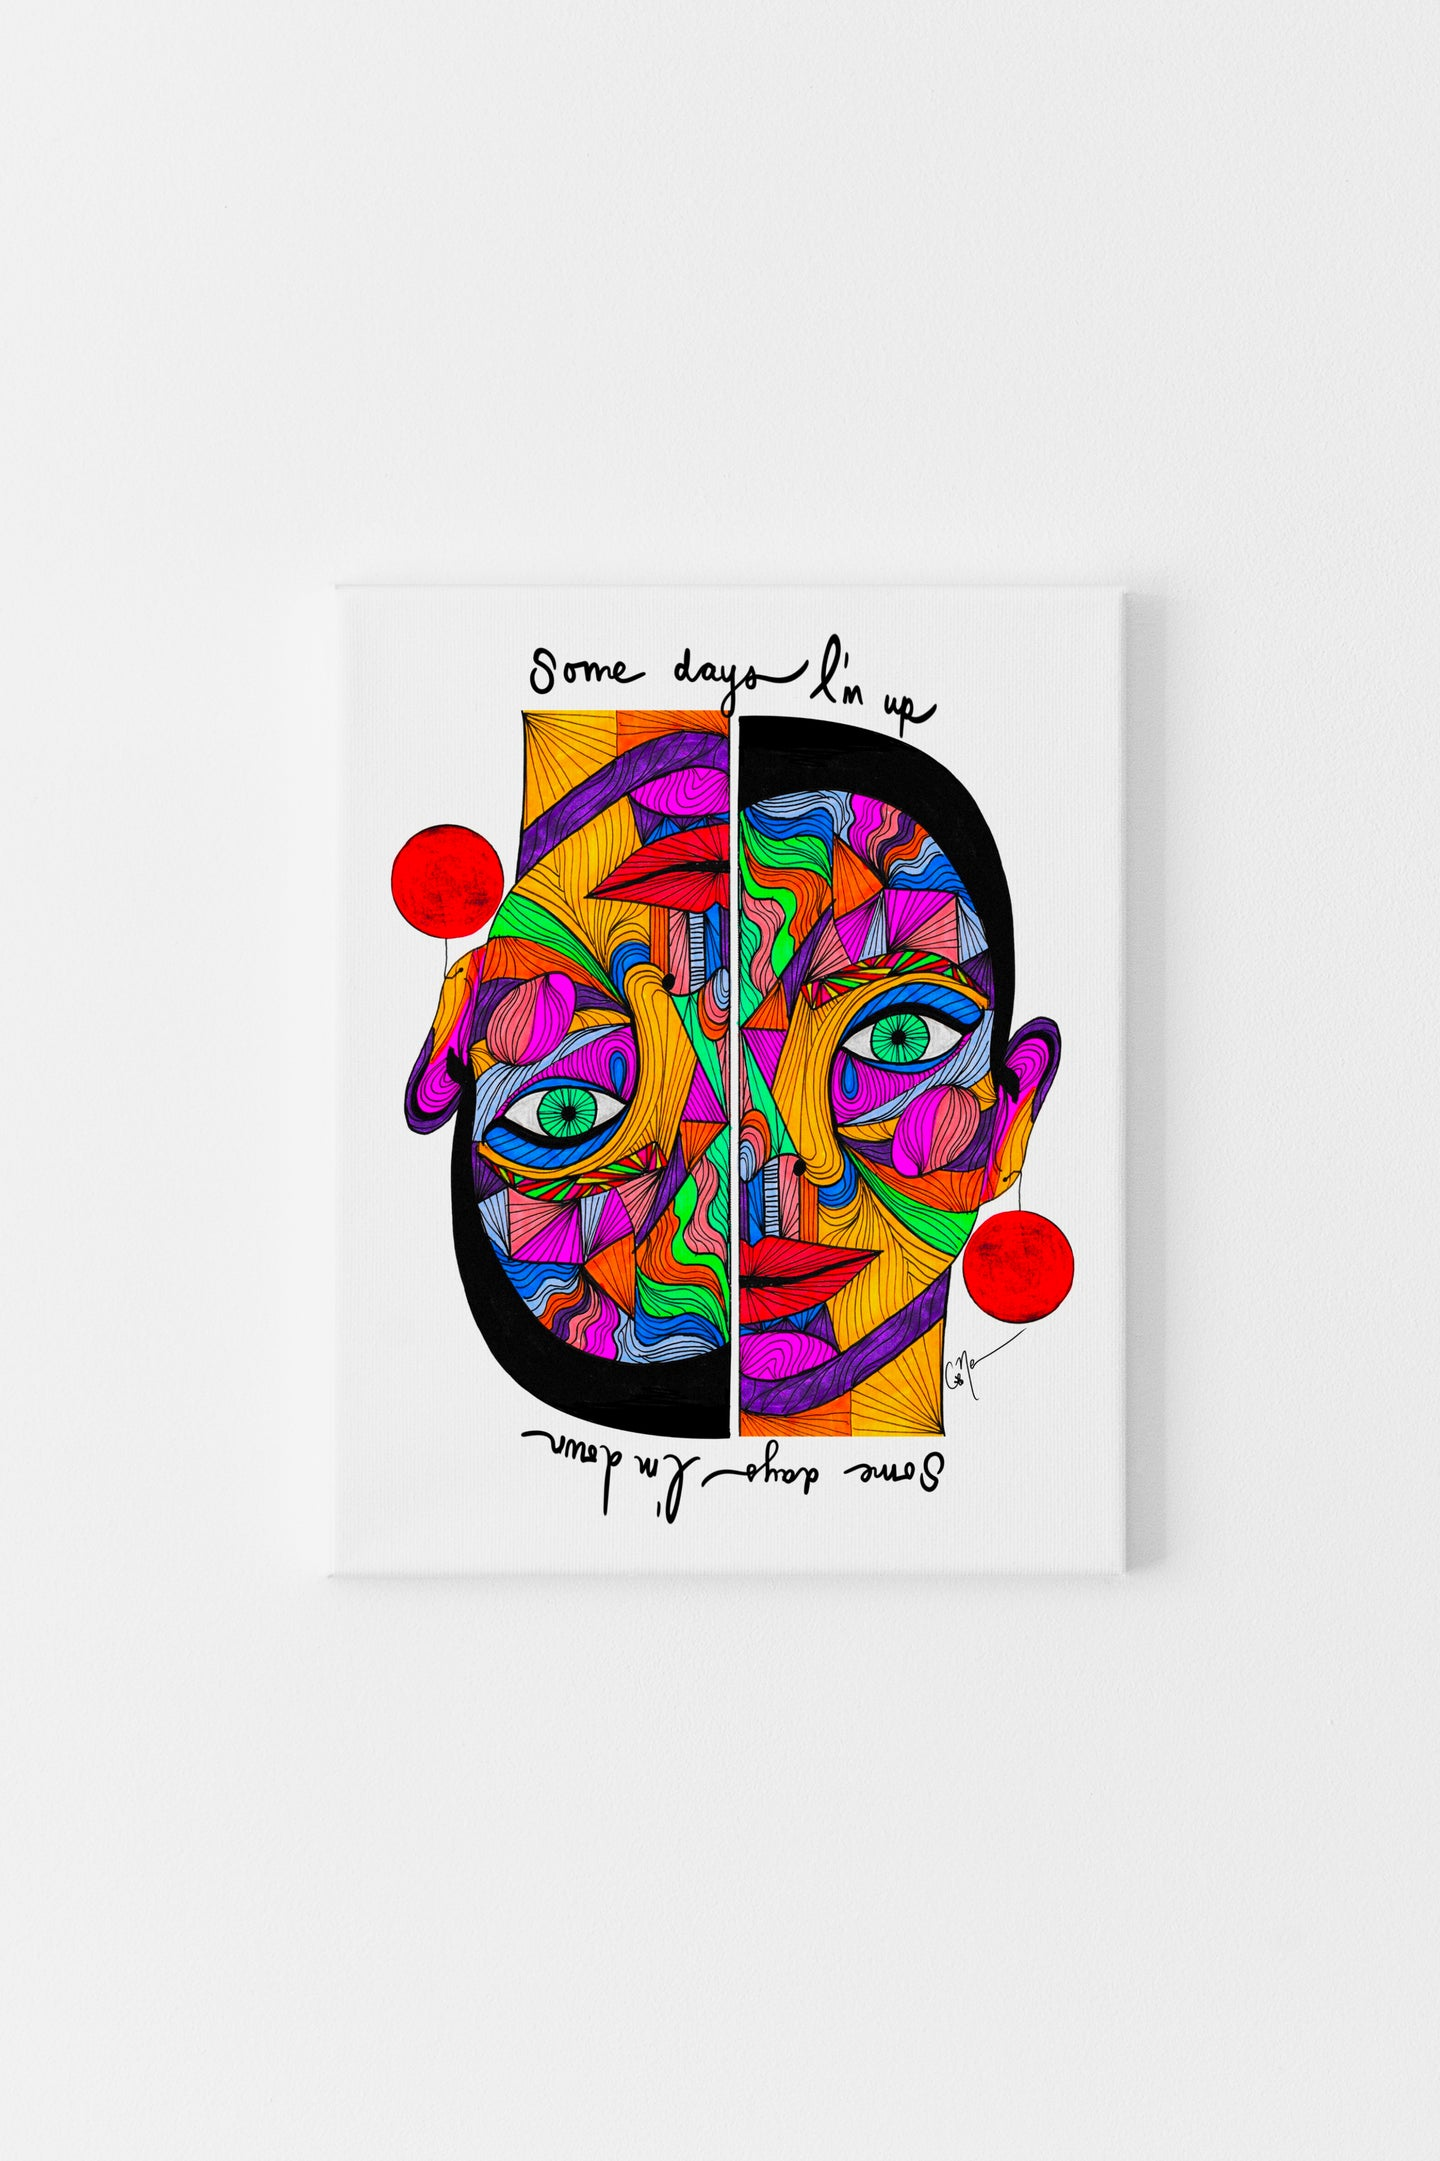 Some days I'm up, some days I'm down  - Canvas Print (Vertical)